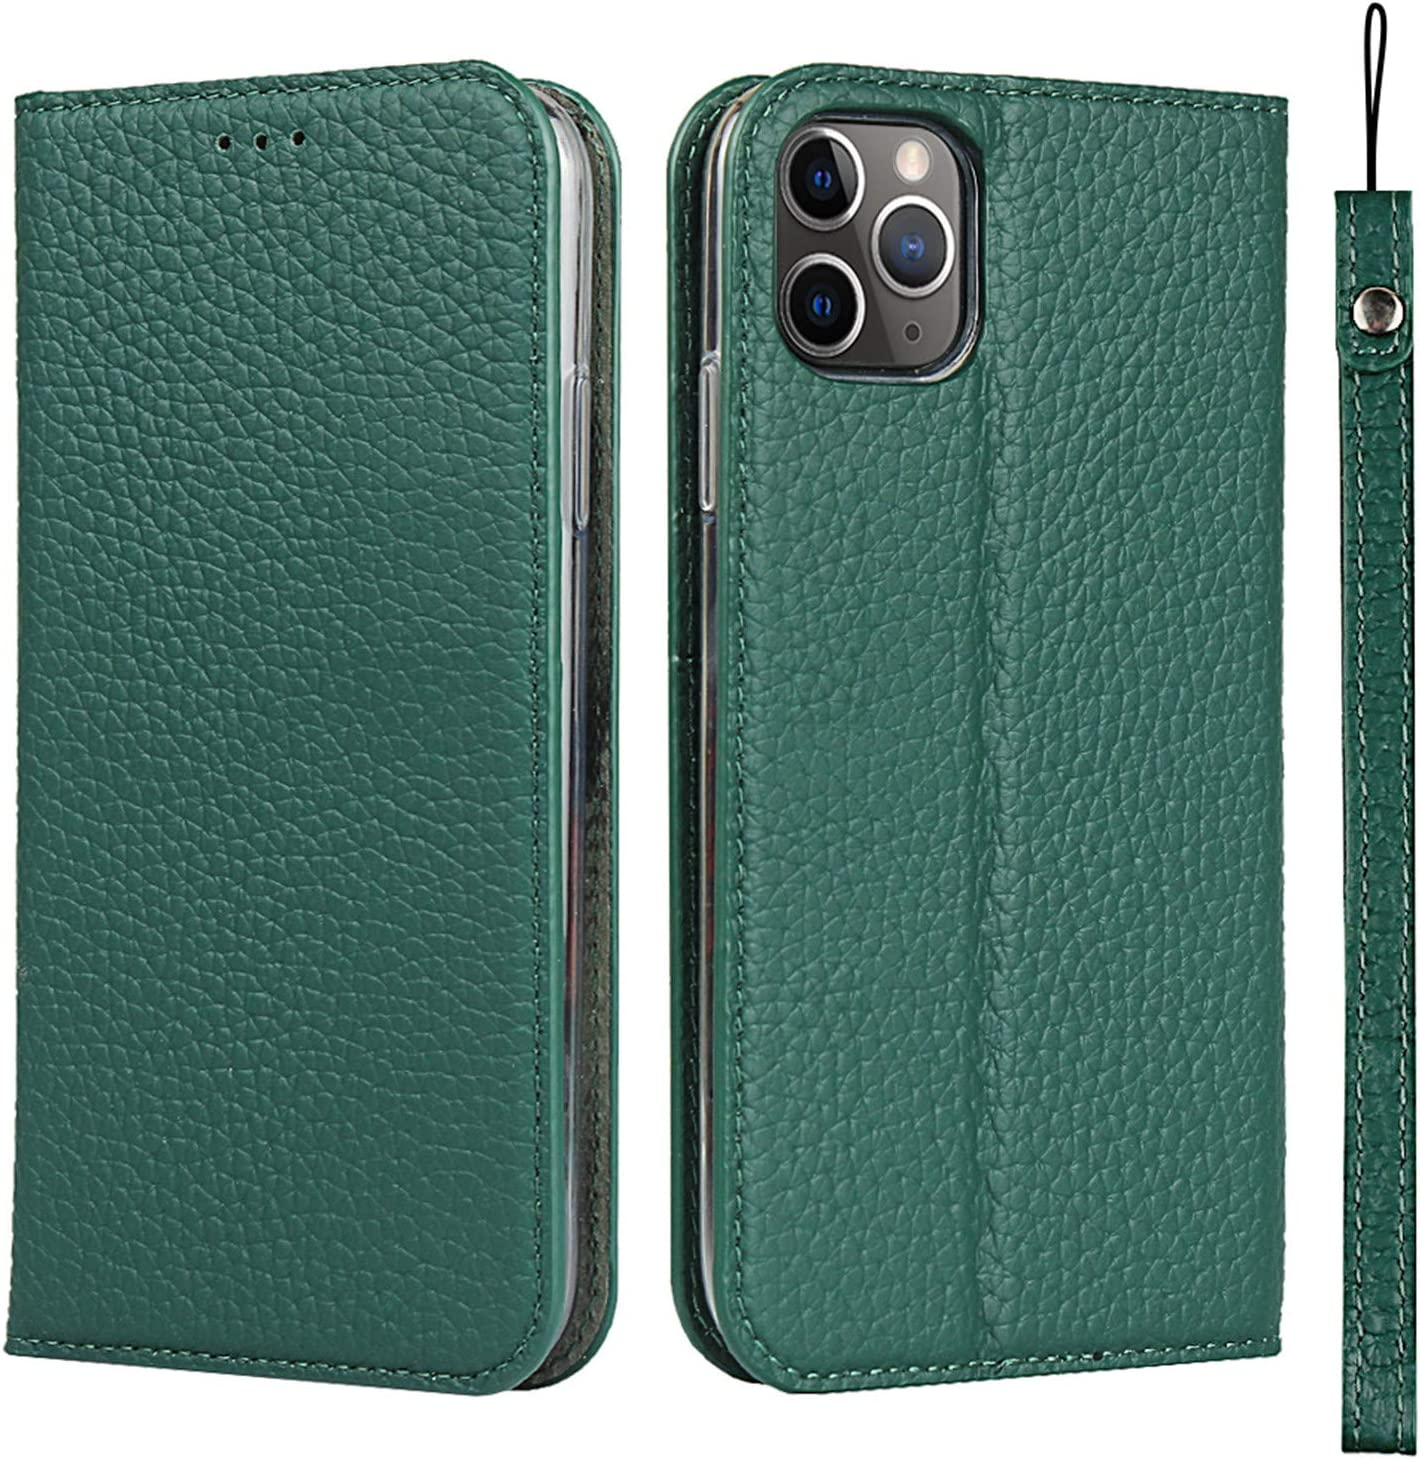 Zouzt [RFID Blocking] Premium Leather case for with iPhone 11 pro max Wallet Magnetic Flip Cover case with Card Slot TPU Shockproof Stand Genuine Leather case with Lanyard Green